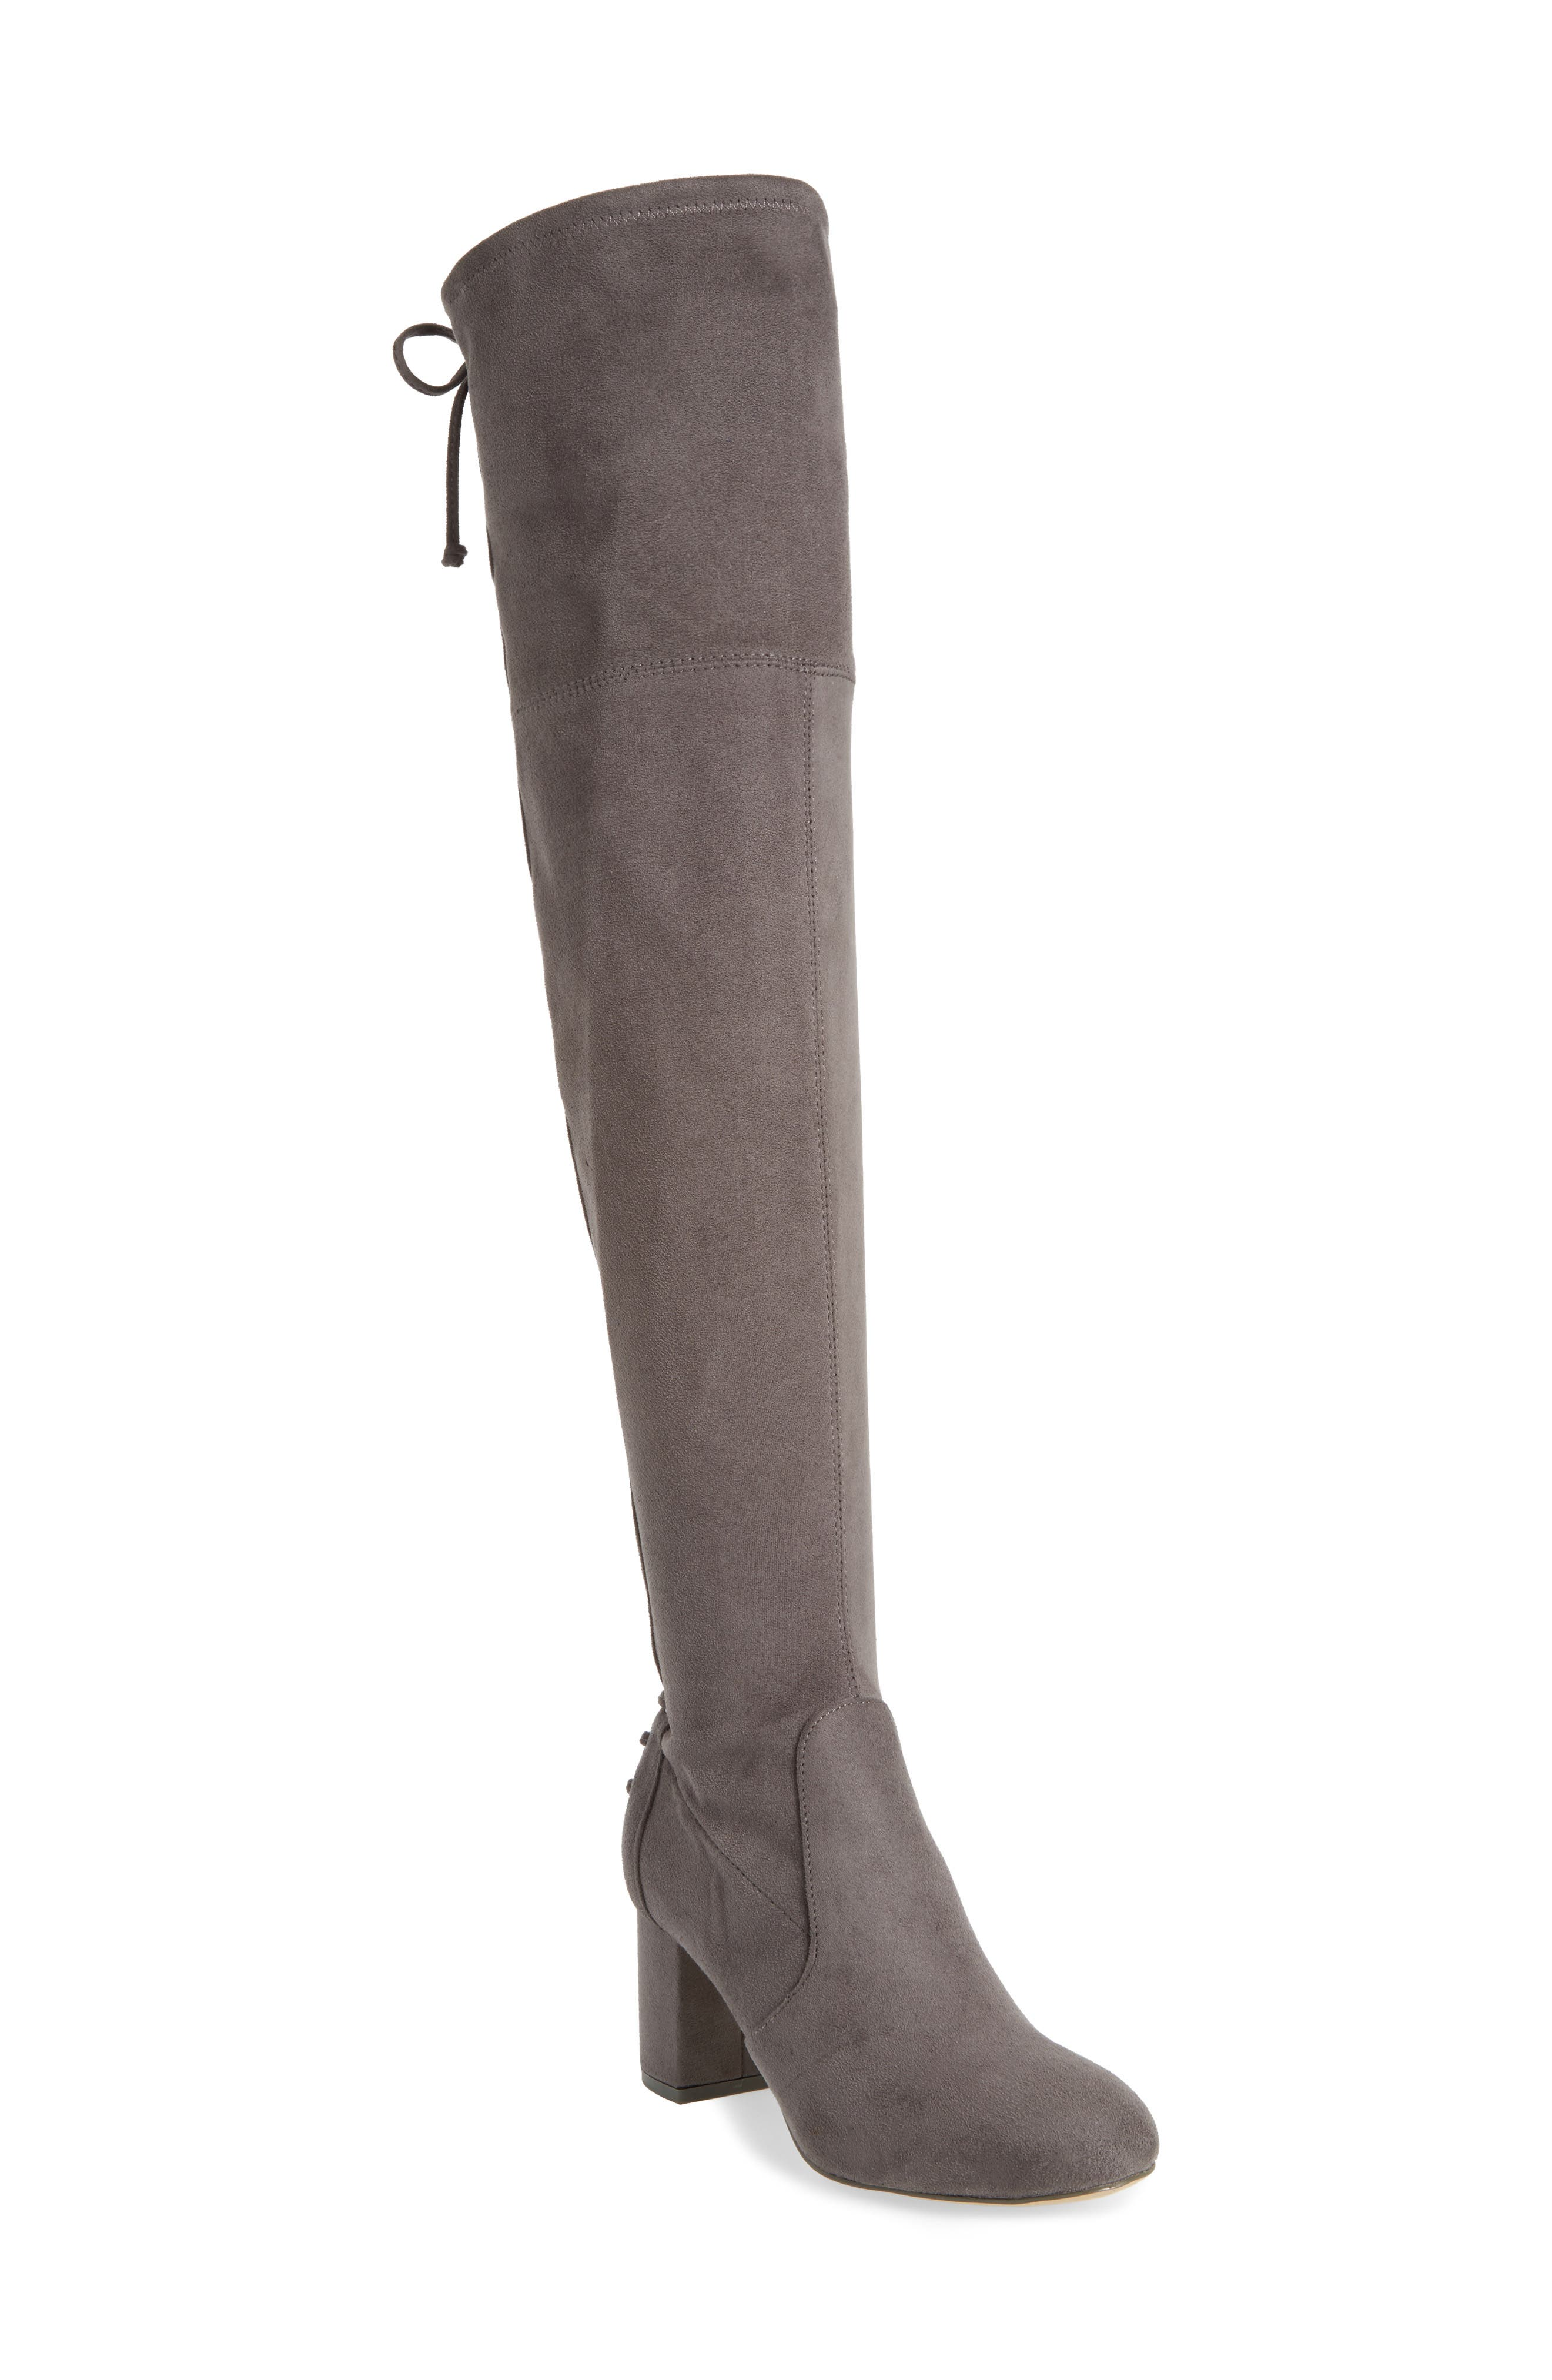 Main Image - Charles by Charles David Ollie Over the Knee Boot (Women)